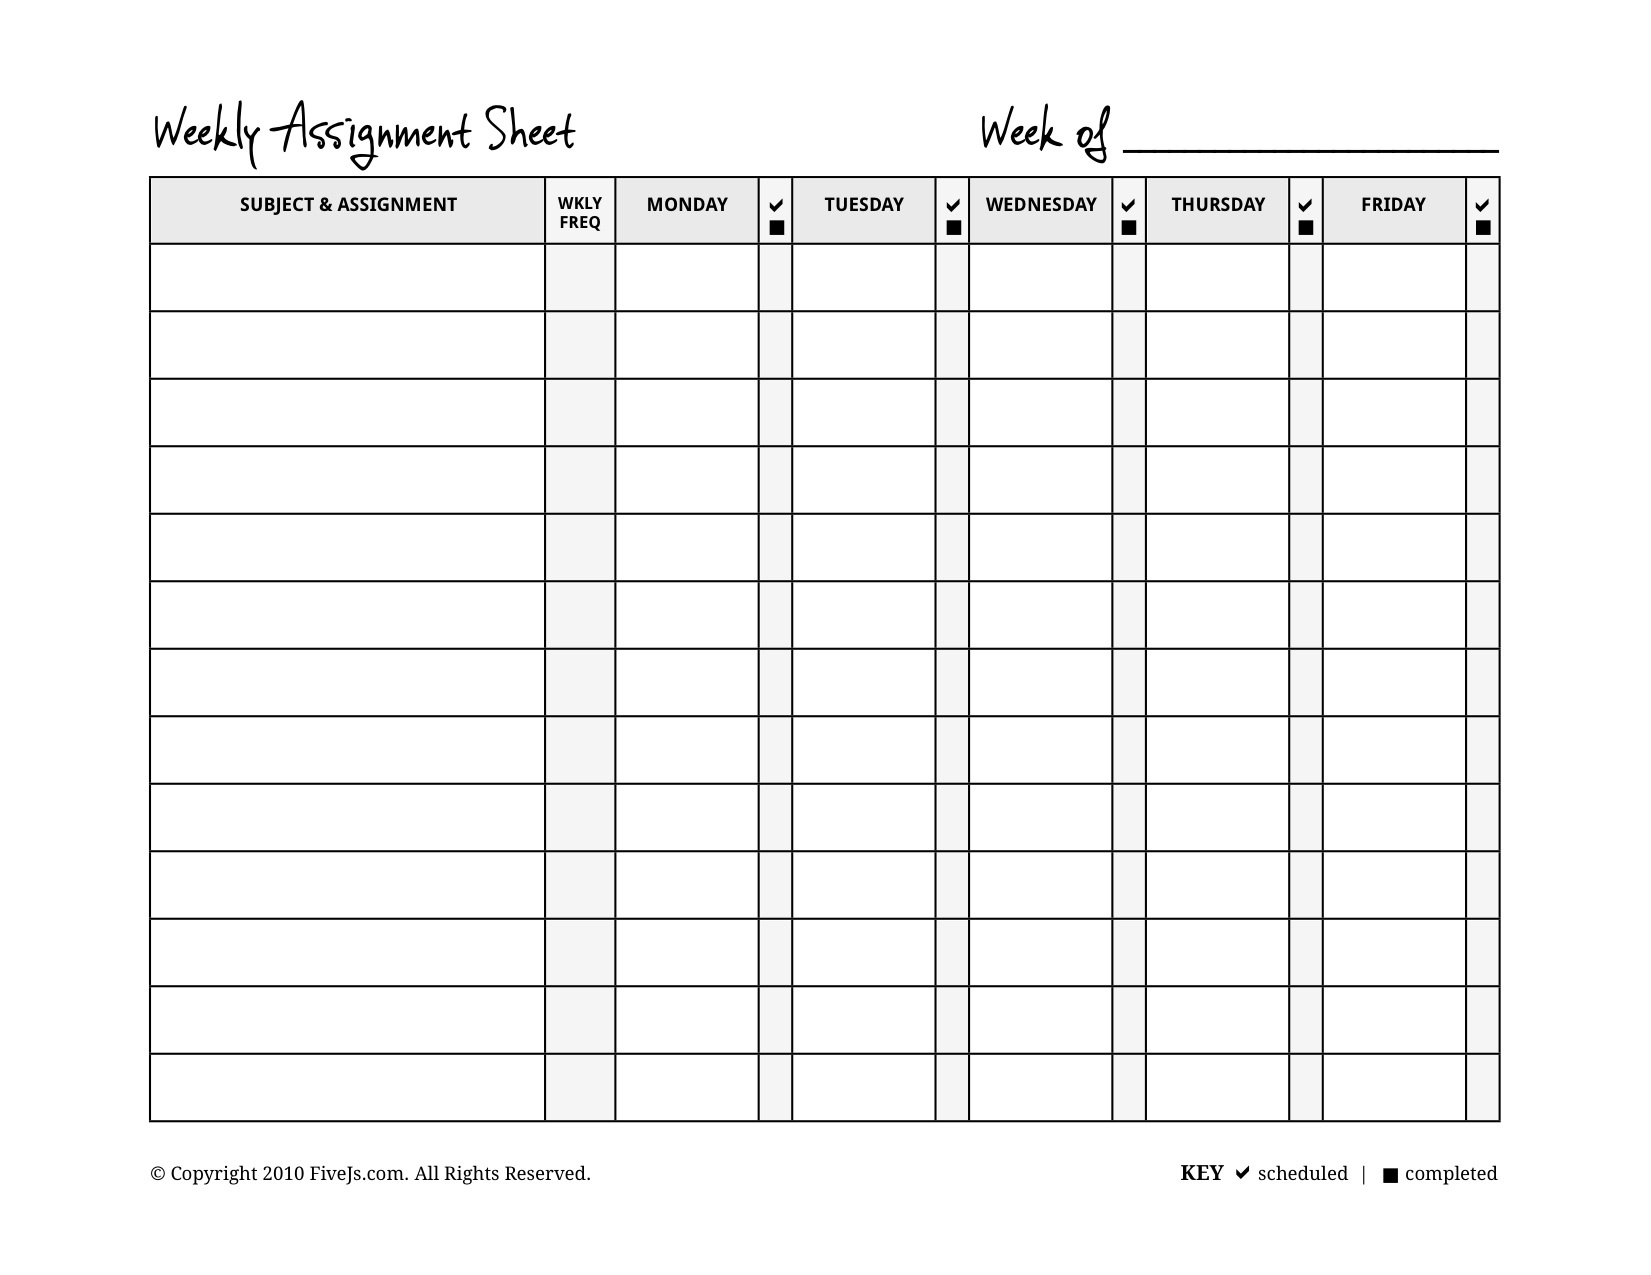 Weekly Assignment Planner - Kaza.psstech.co - Free Printable Homework Assignment Sheets